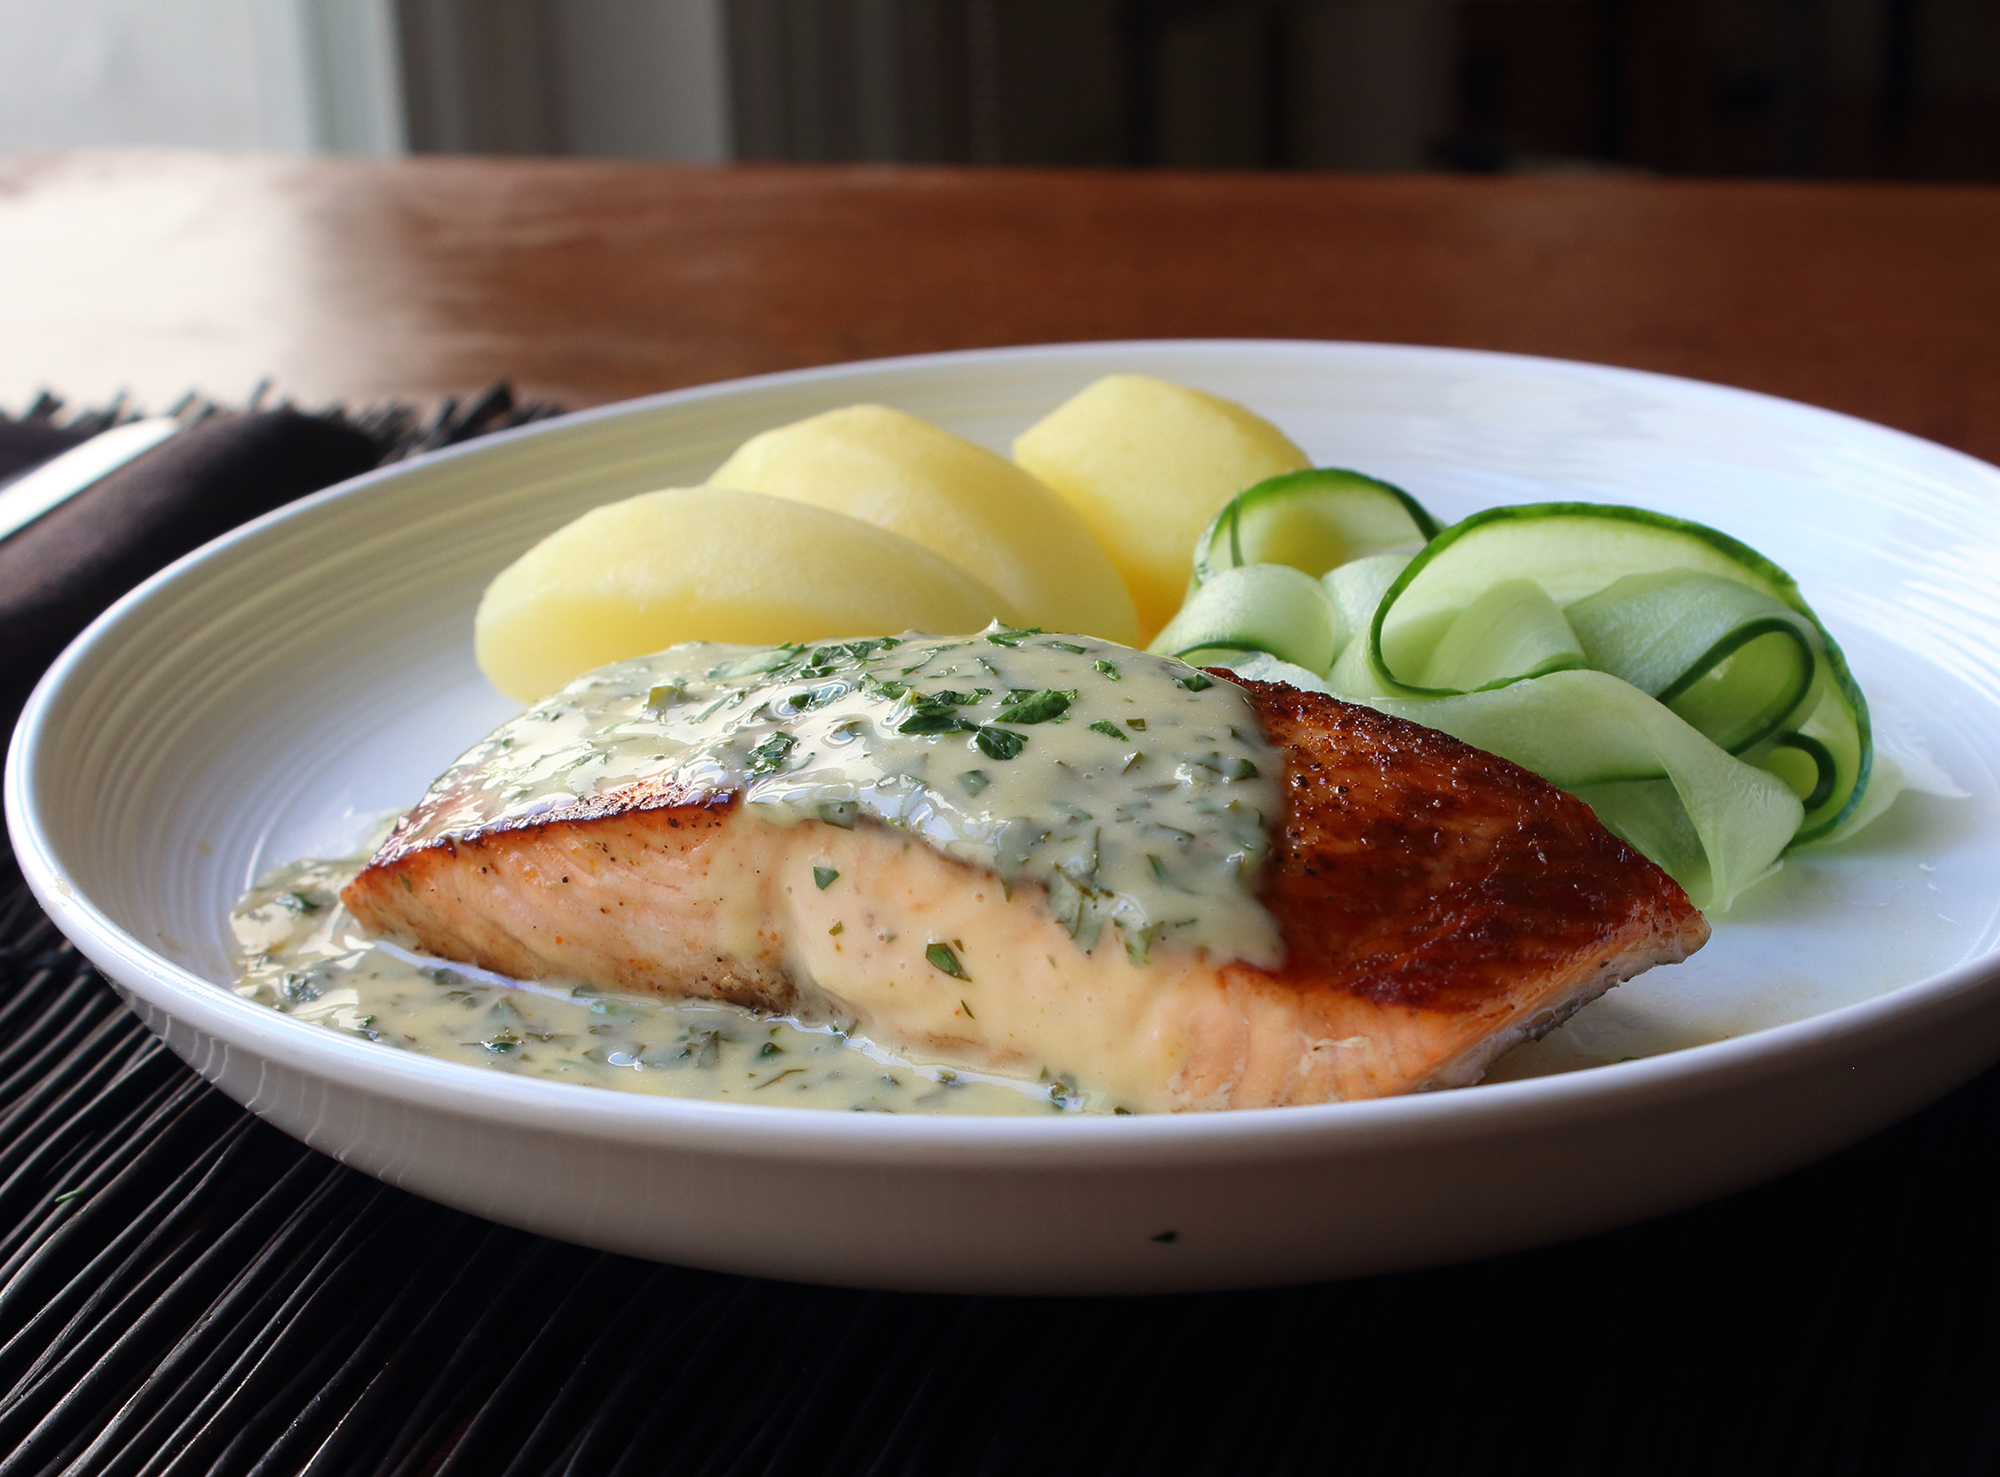 a white dinner plate showing a salmon fillet topped with butter sauce in the foreground, with boiled potatoes and shaved cucumber in the background